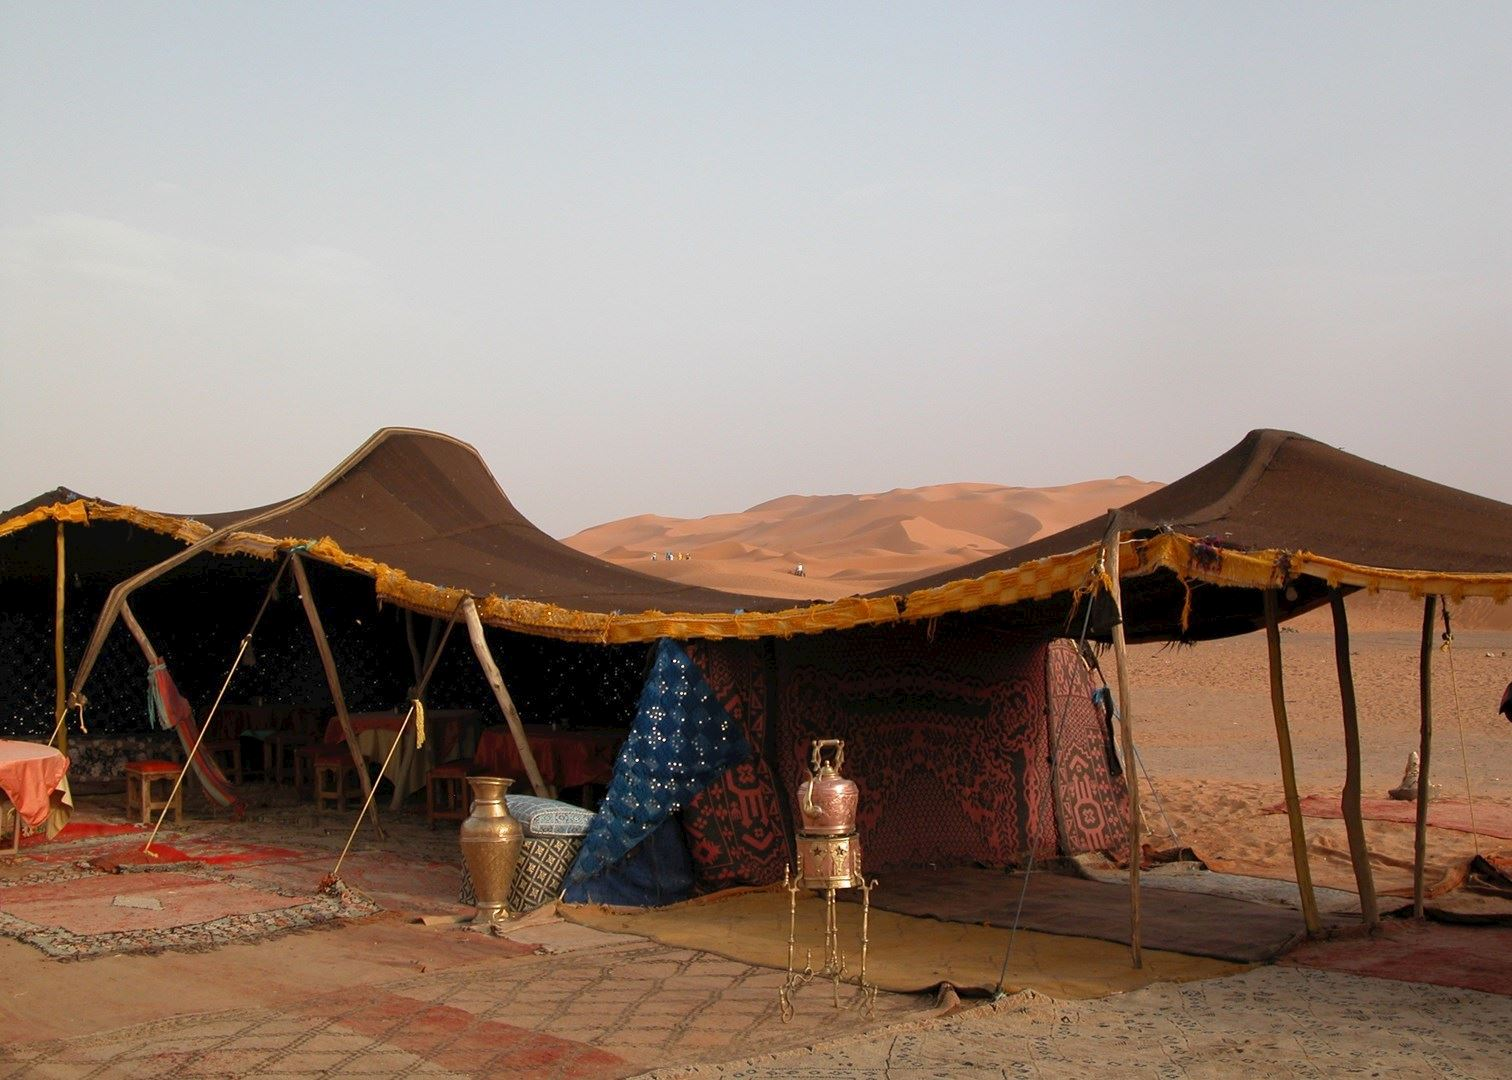 Gold Sand Camp The Erg Chebbi Audley Travel